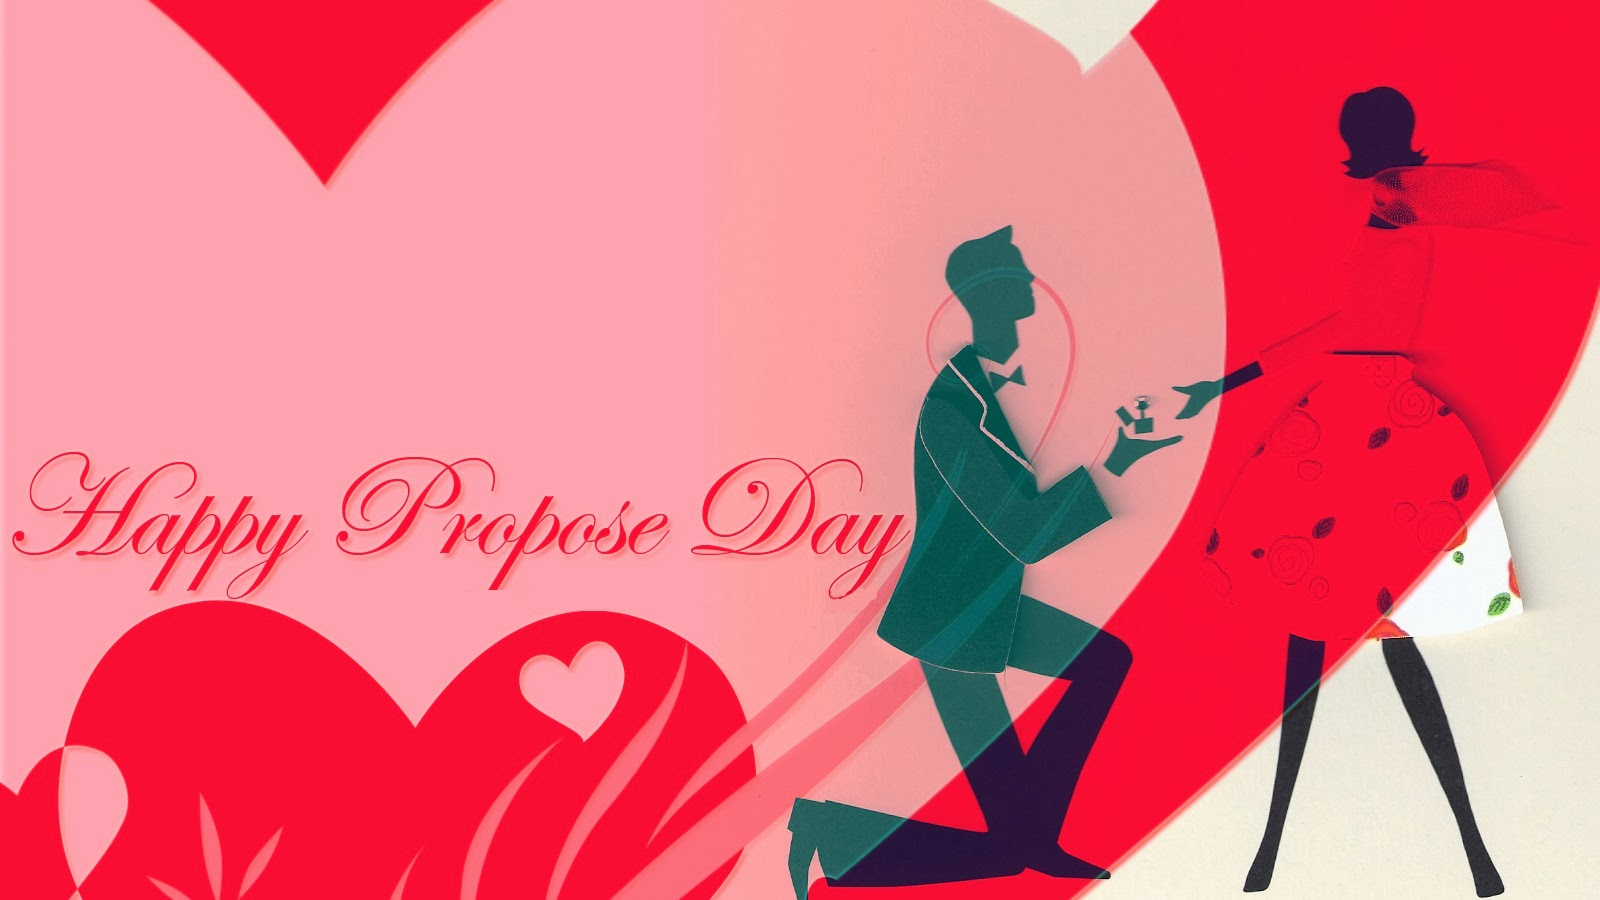 propose day messages 2018